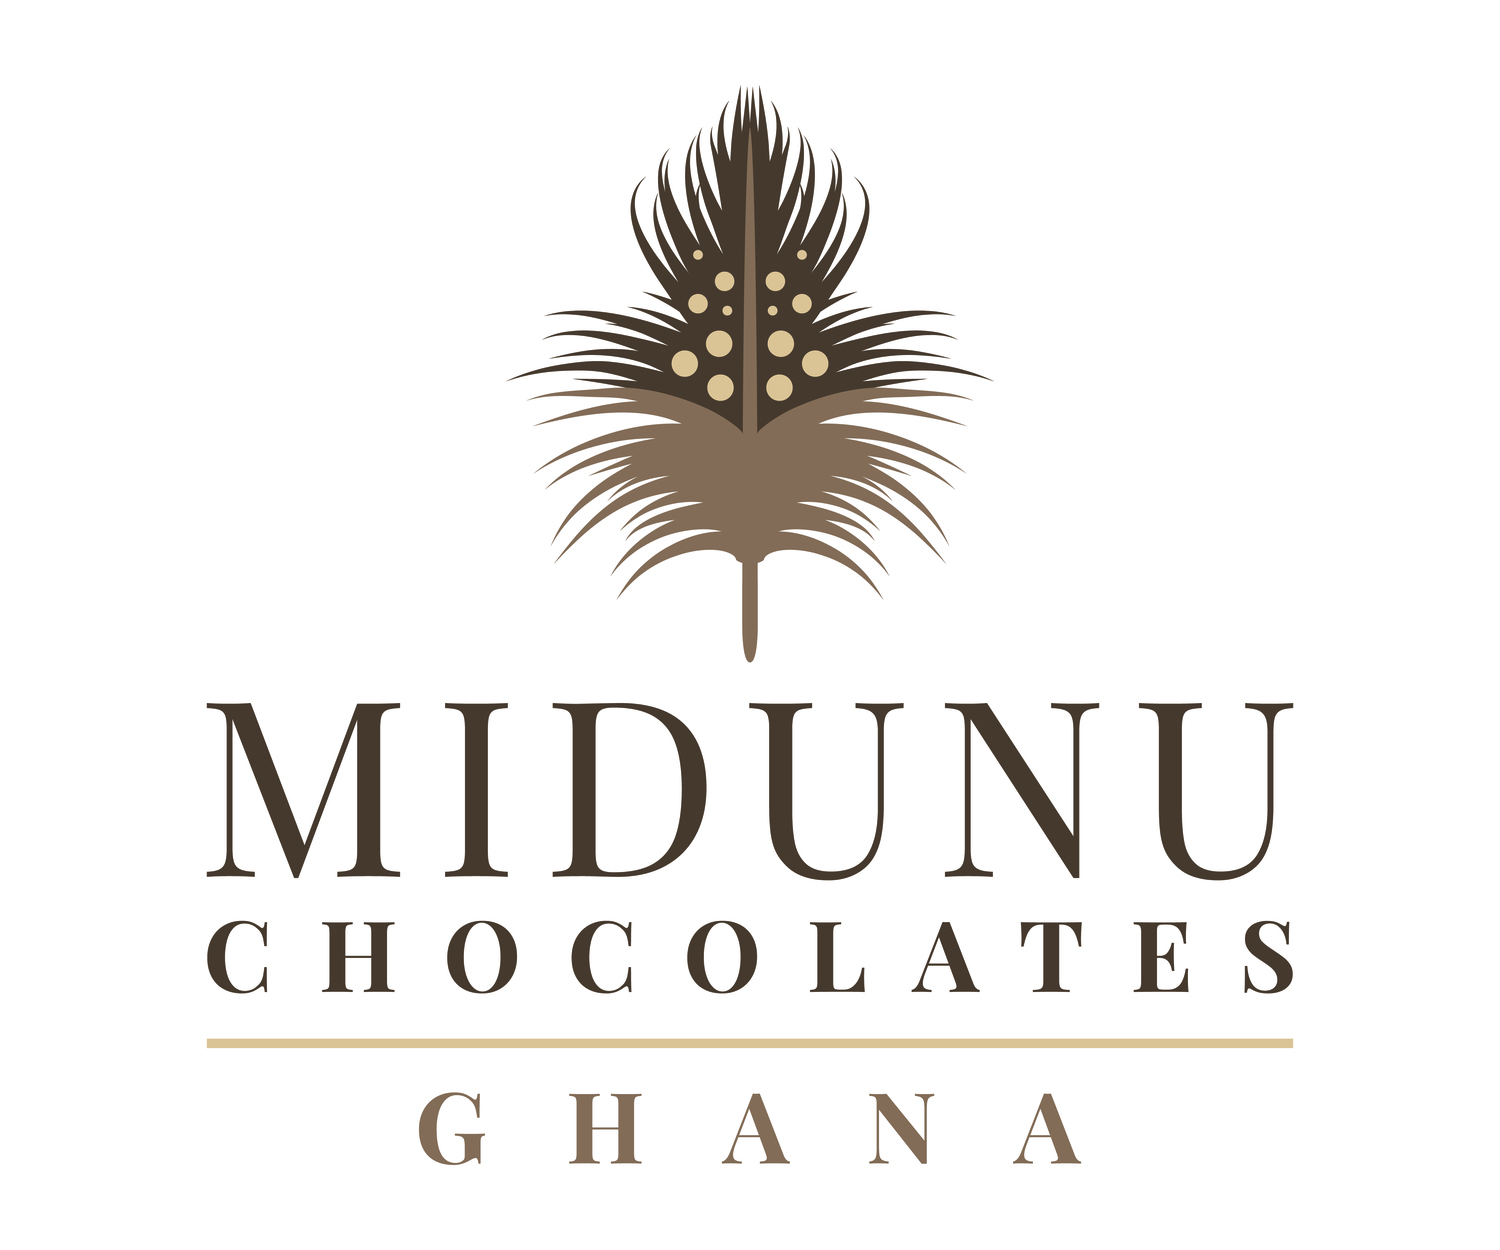 Midunu Chocolates